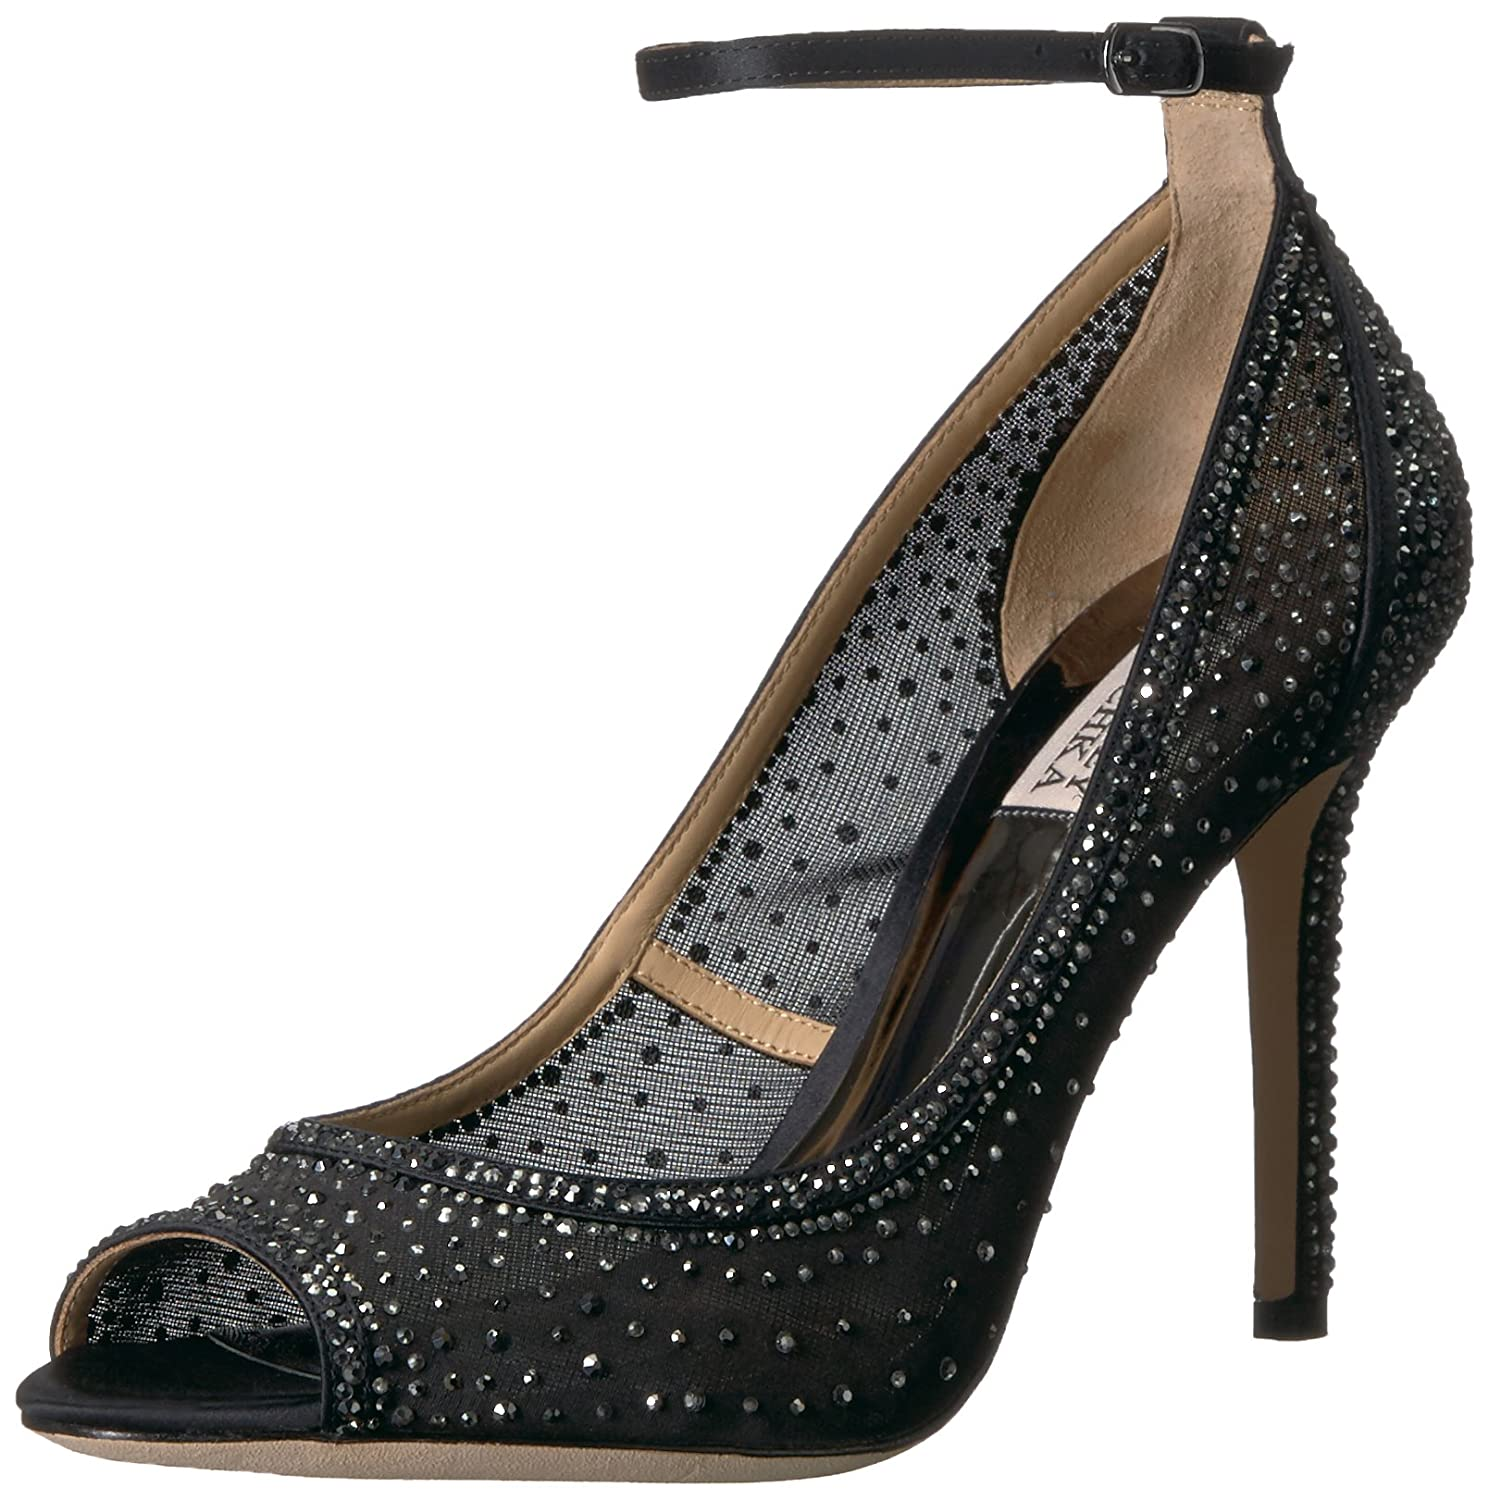 Badgley Mischka Women's Weylin Pump B073CYG4PM 8.5 B(M) US|Black